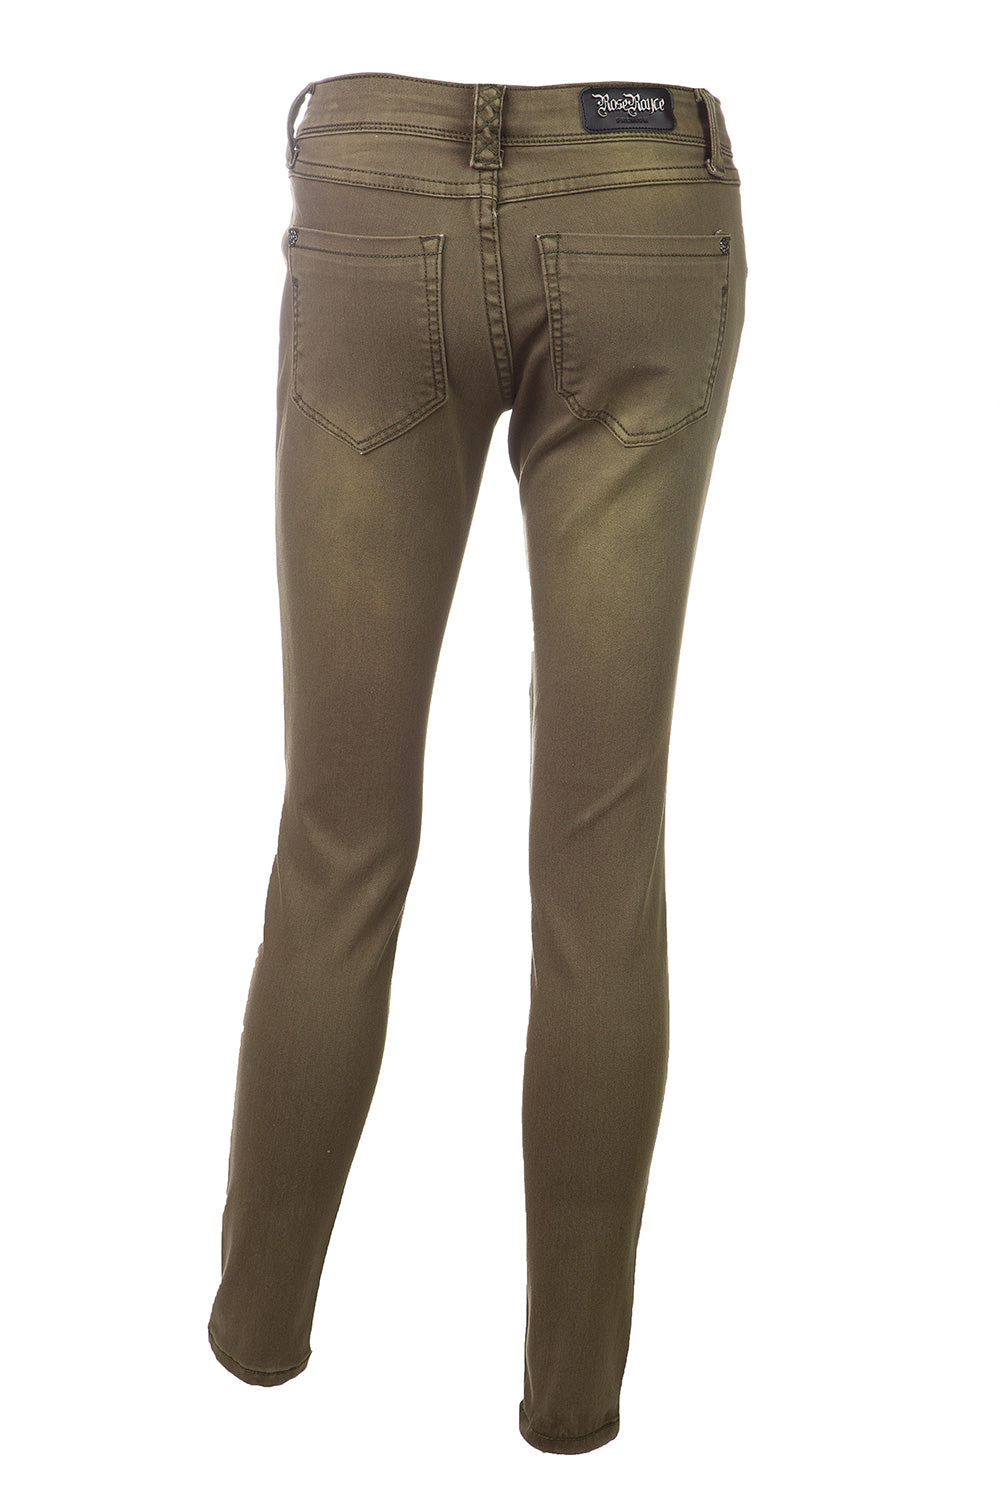 Type 3 Jungle Green Pants